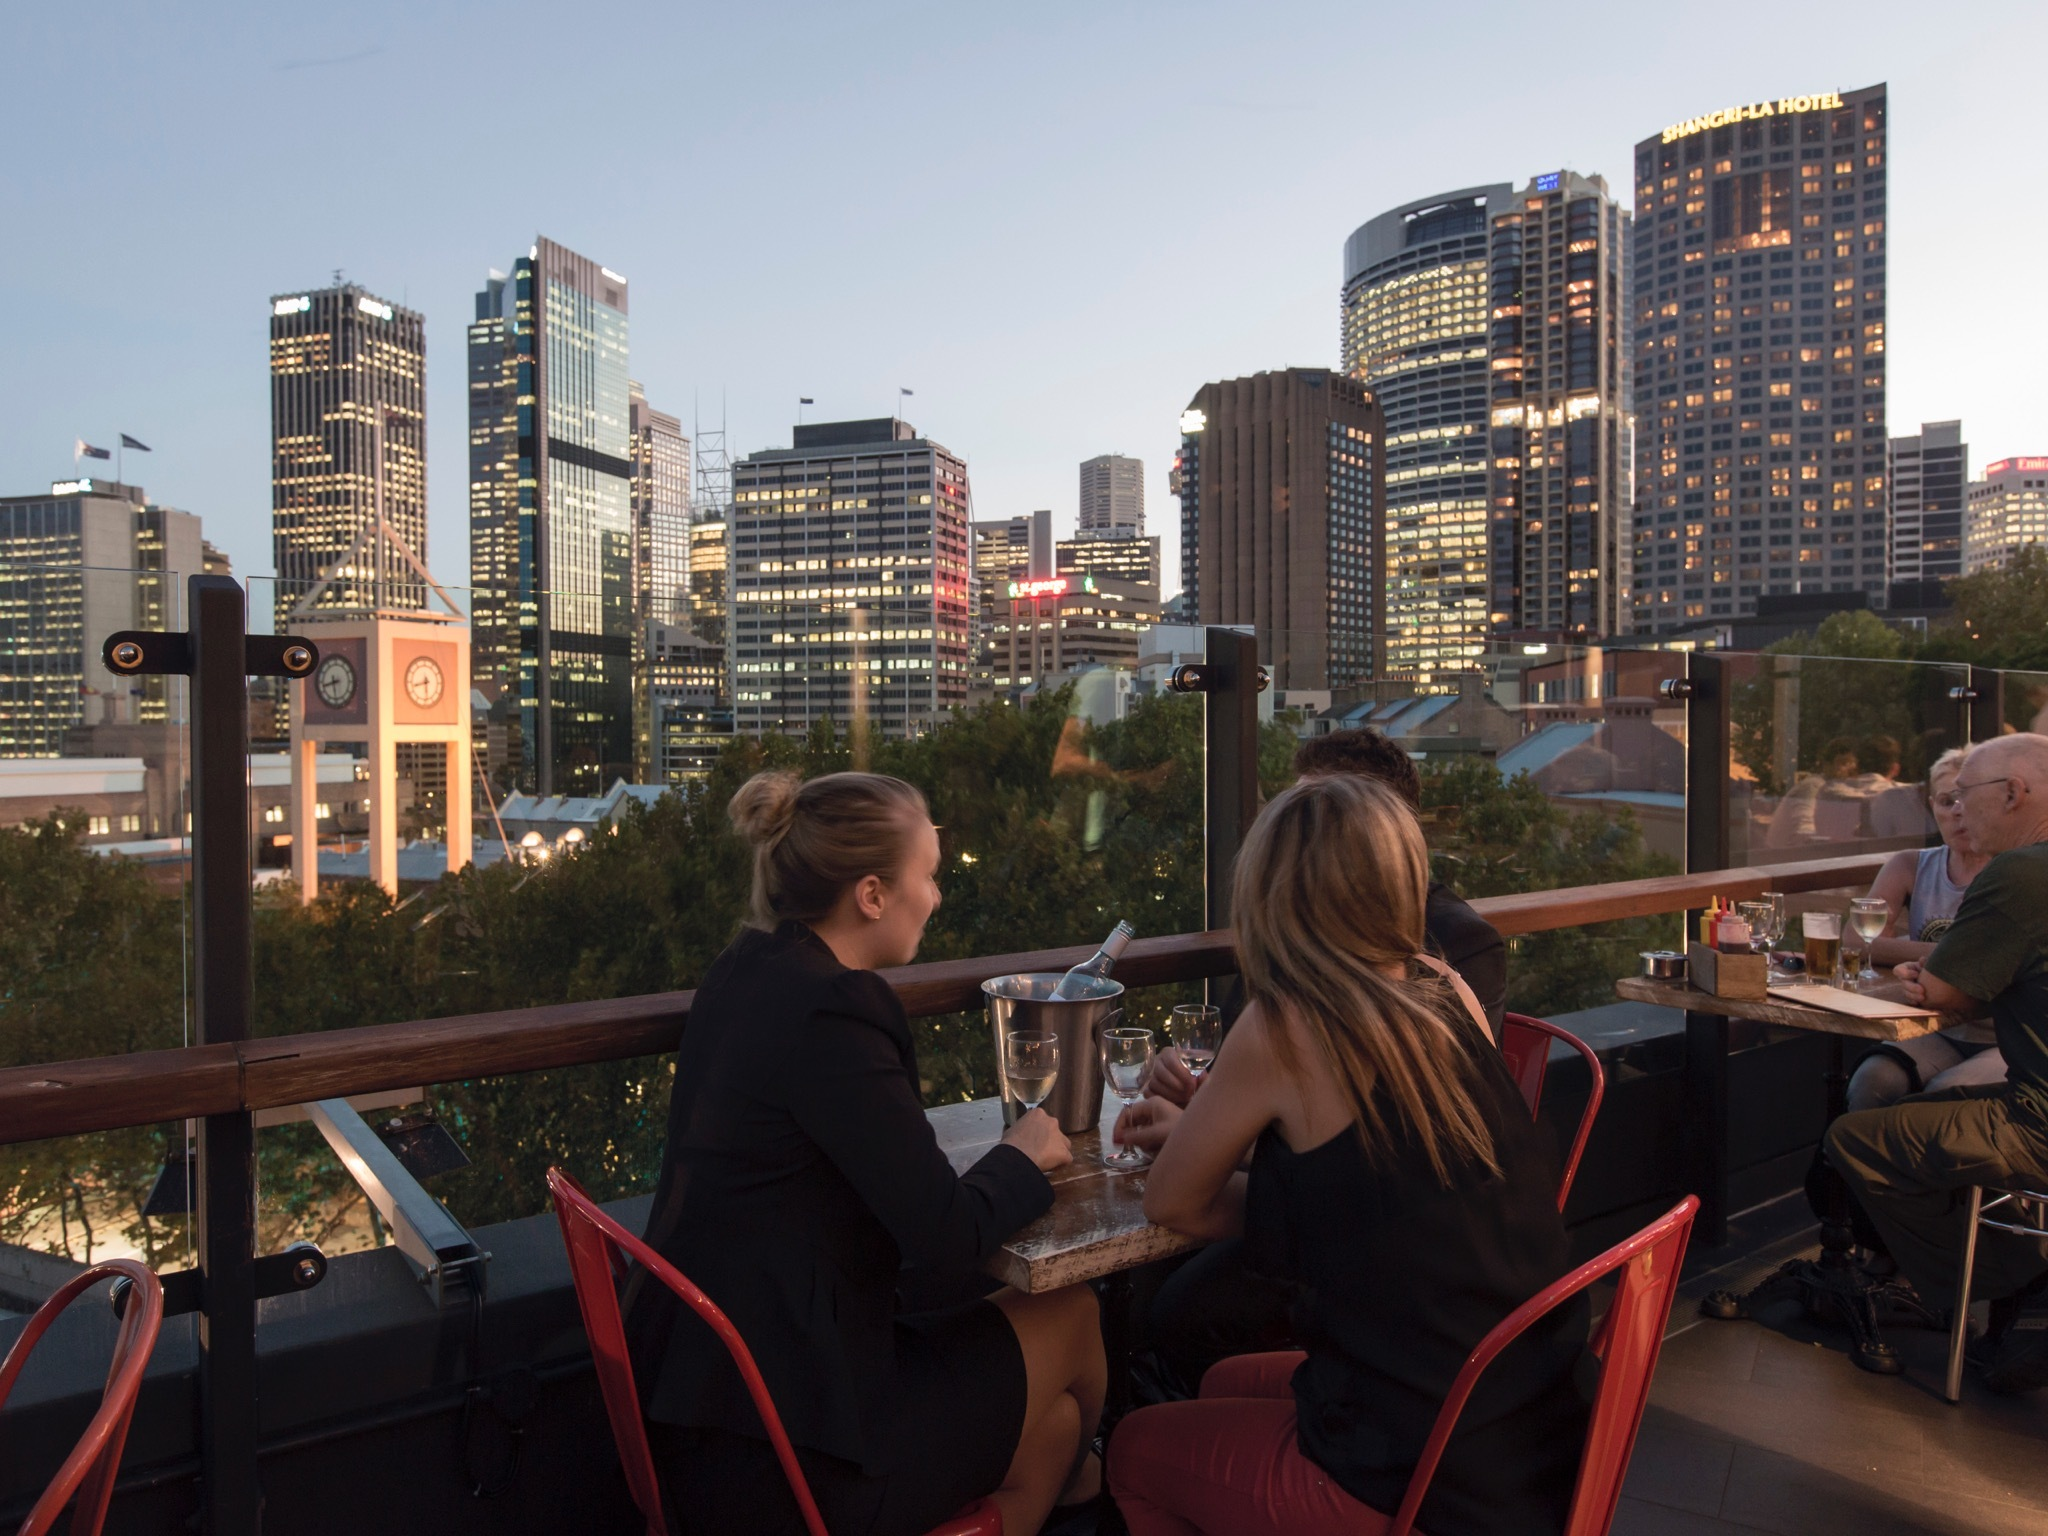 People drinking with a view of the city